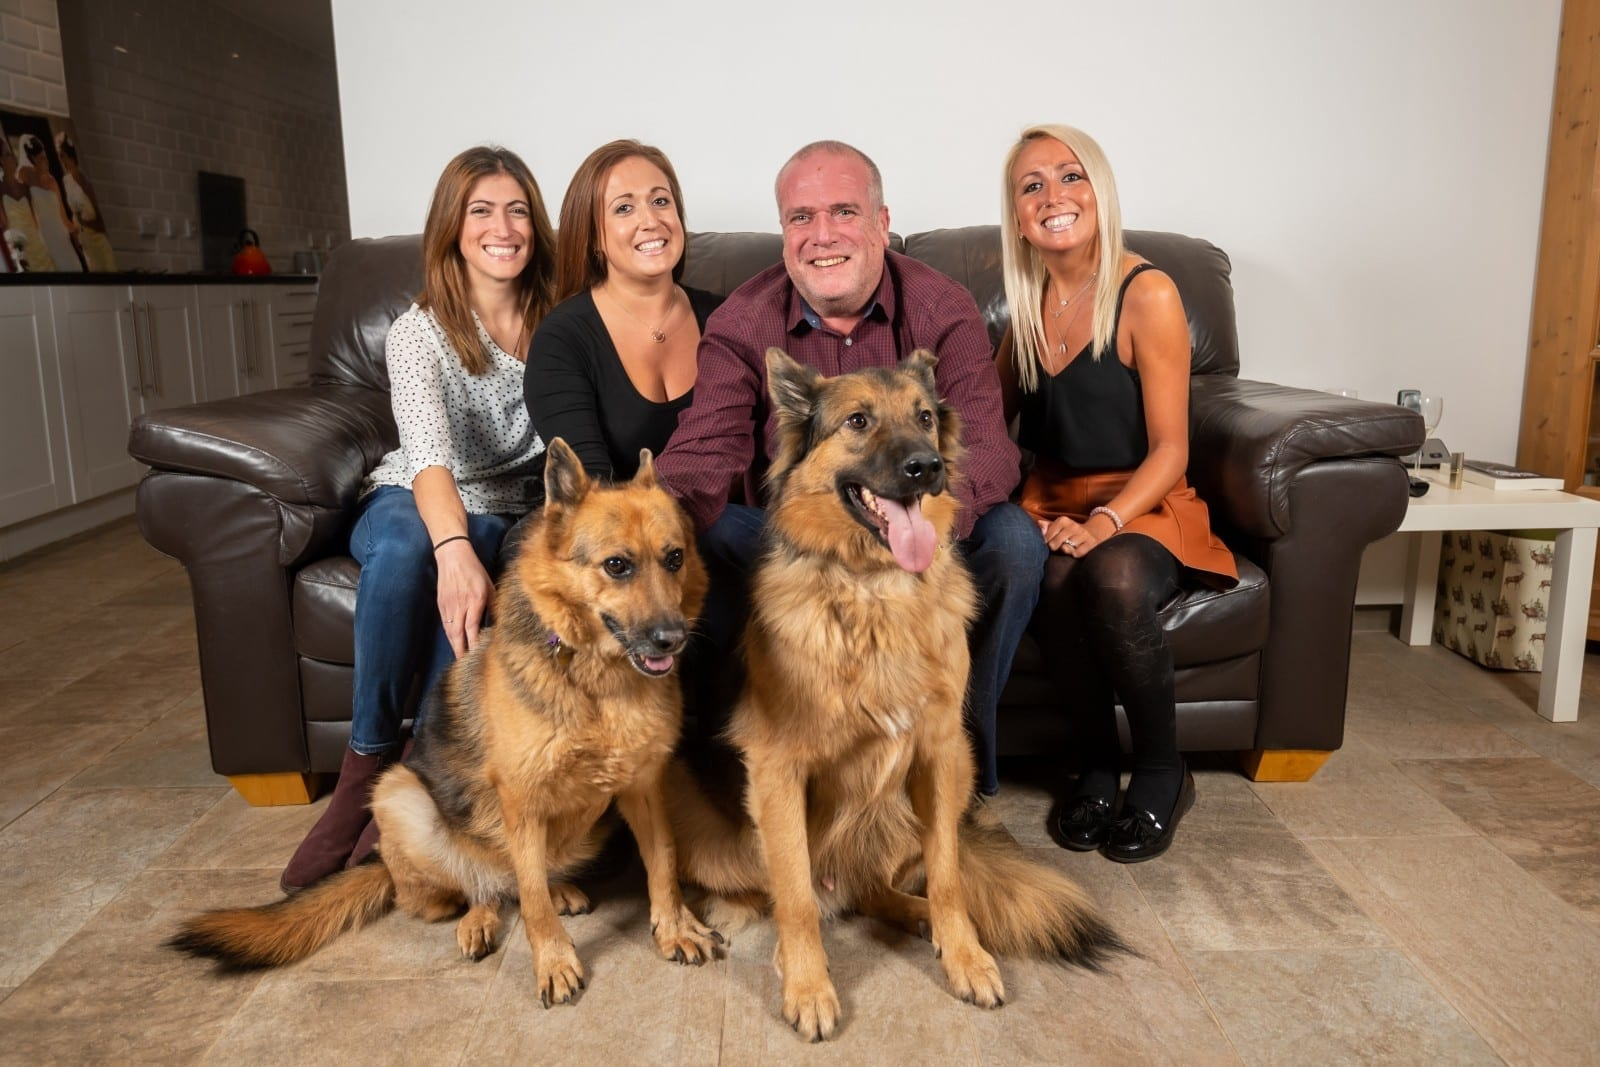 'I Was Looking To Feel Needed Again' - Depressed Dad Developed Empty Nest Syndrome After Daughters Left Home- And Dealt With It By Saving Dogs From Killing Stations